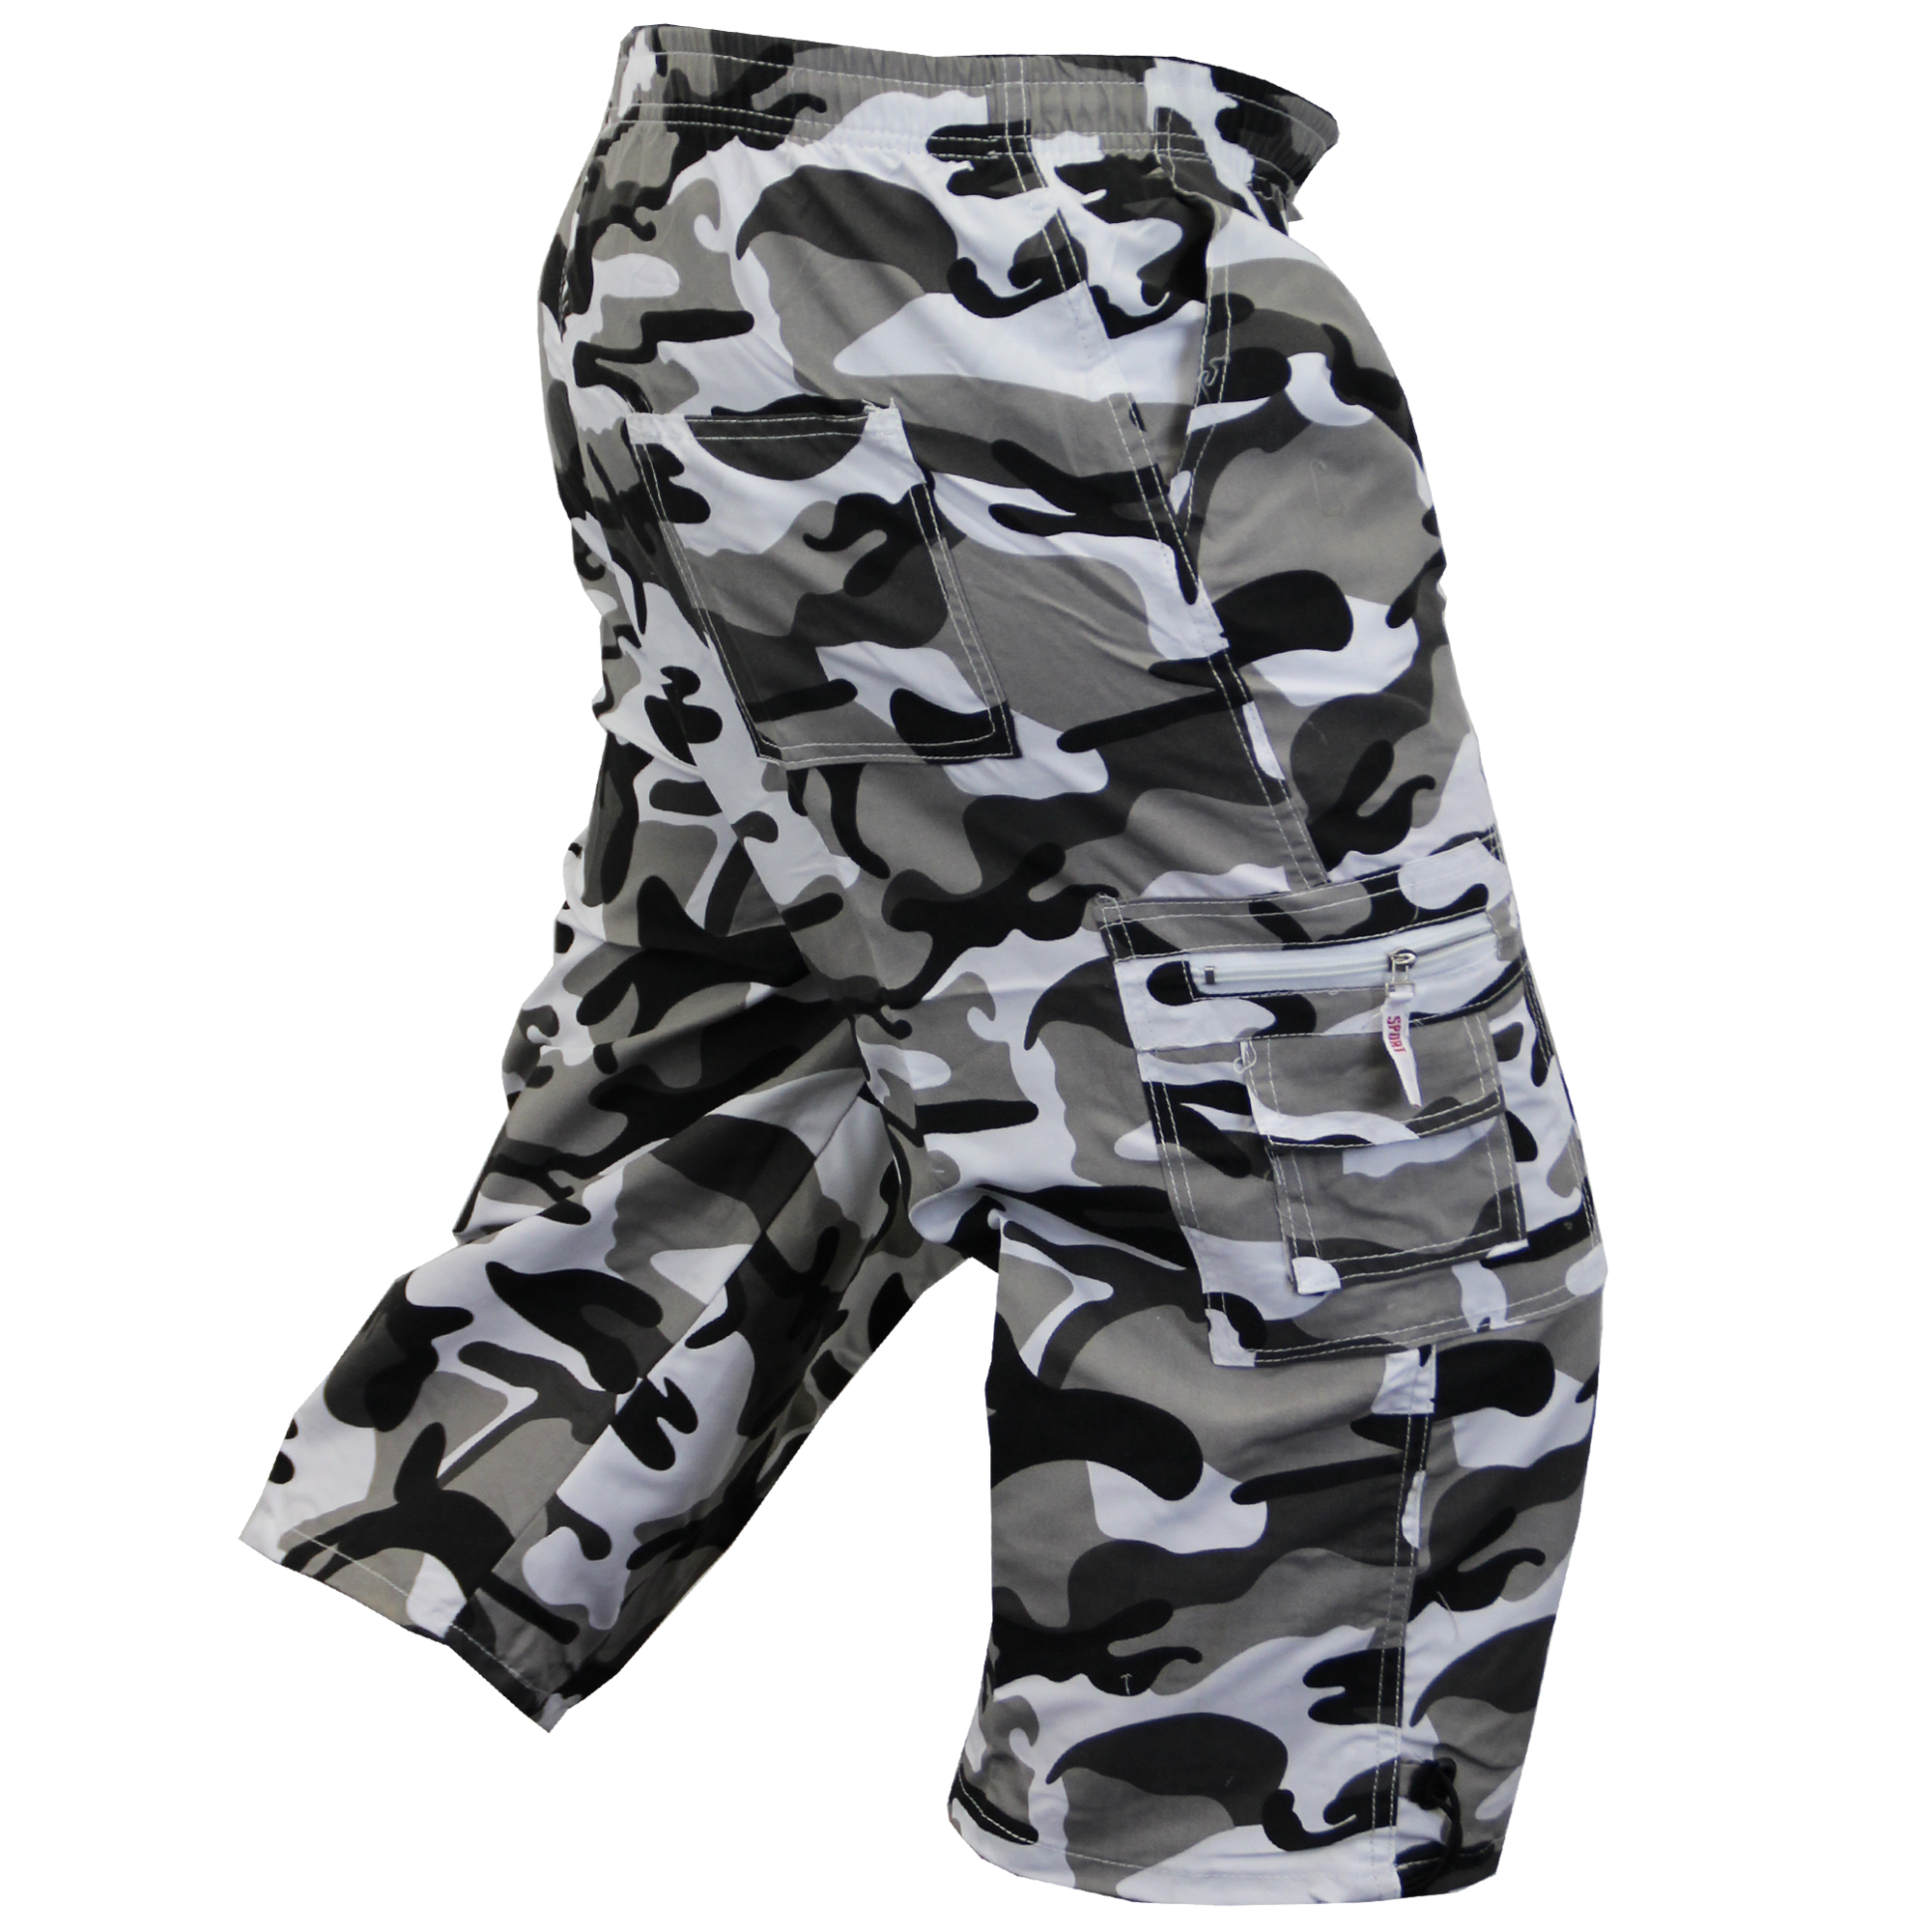 Mens-Camouflage-Combat-Cargo-Shorts-3-4-Length-Army-Military-Sports-Summer-New thumbnail 13